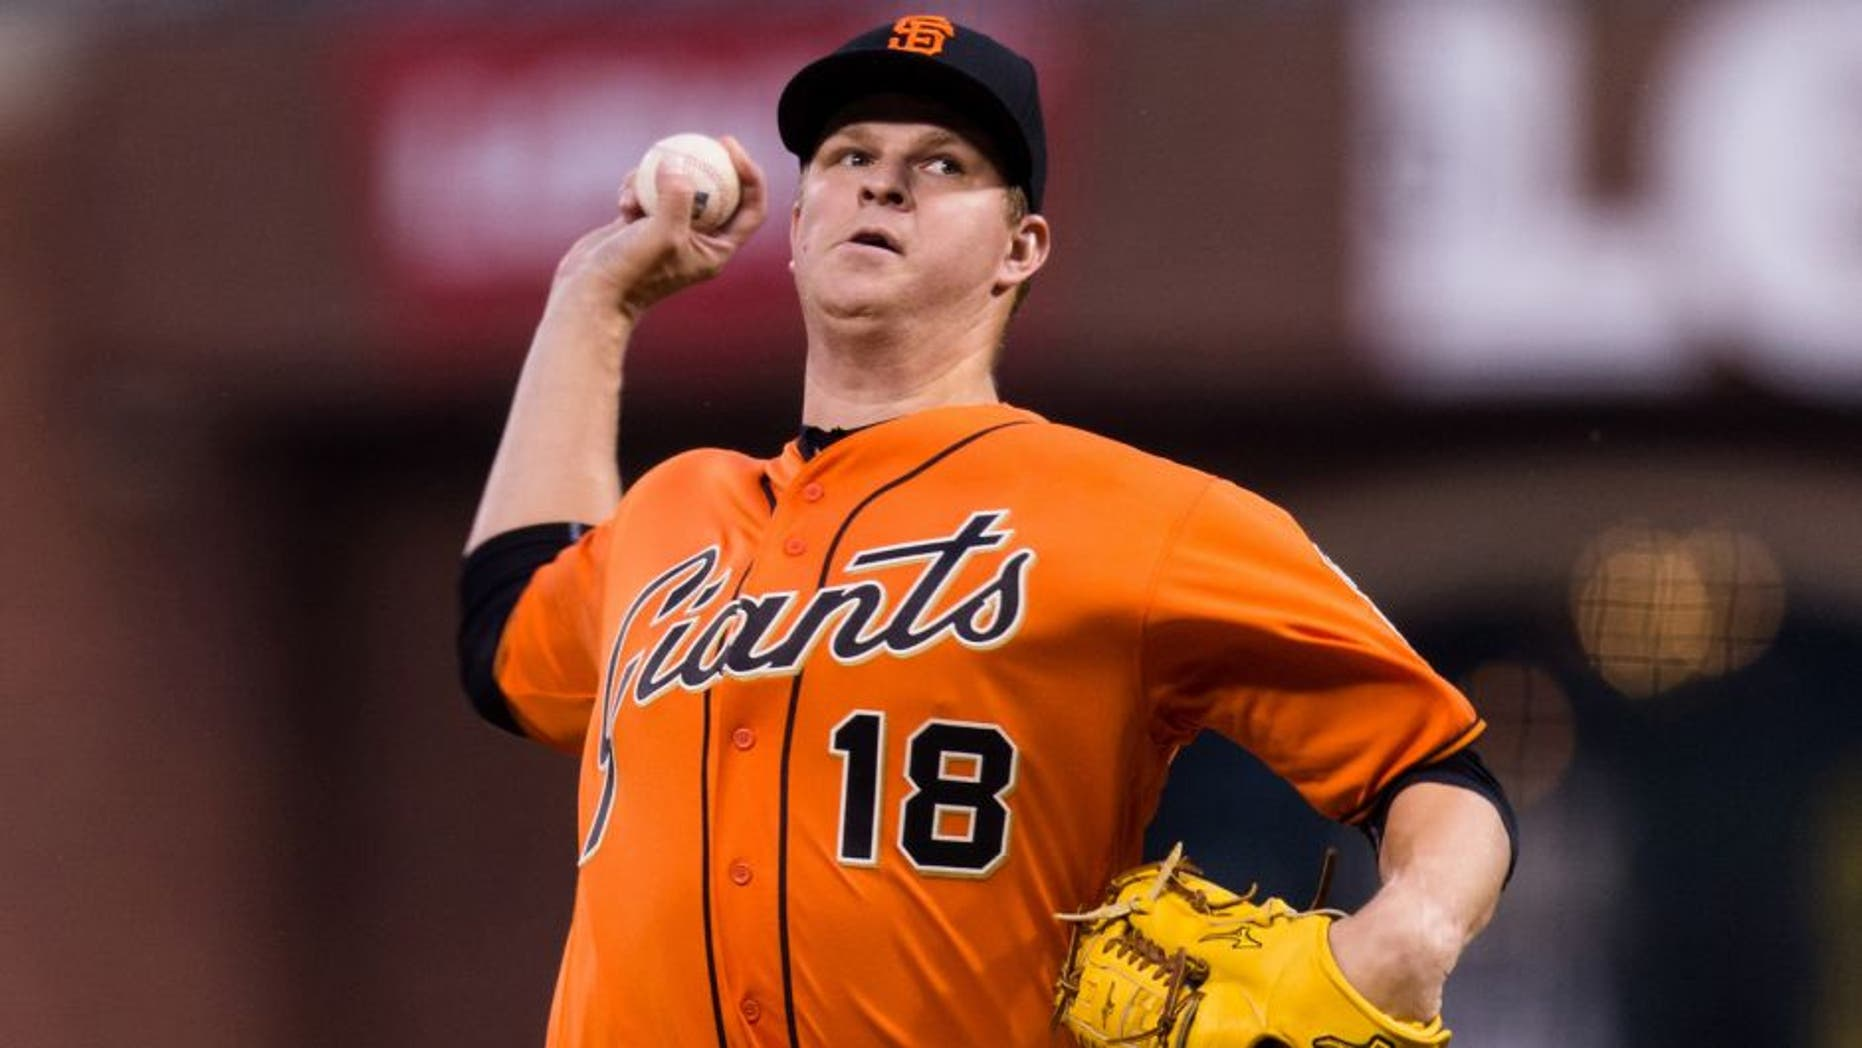 Apr 8, 2016; San Francisco, CA, USA; San Francisco Giants starting pitcher Matt Cain (18) throws against the Los Angeles Dodgers in the first inning at AT&T Park. Mandatory Credit: John Hefti-USA TODAY Sports